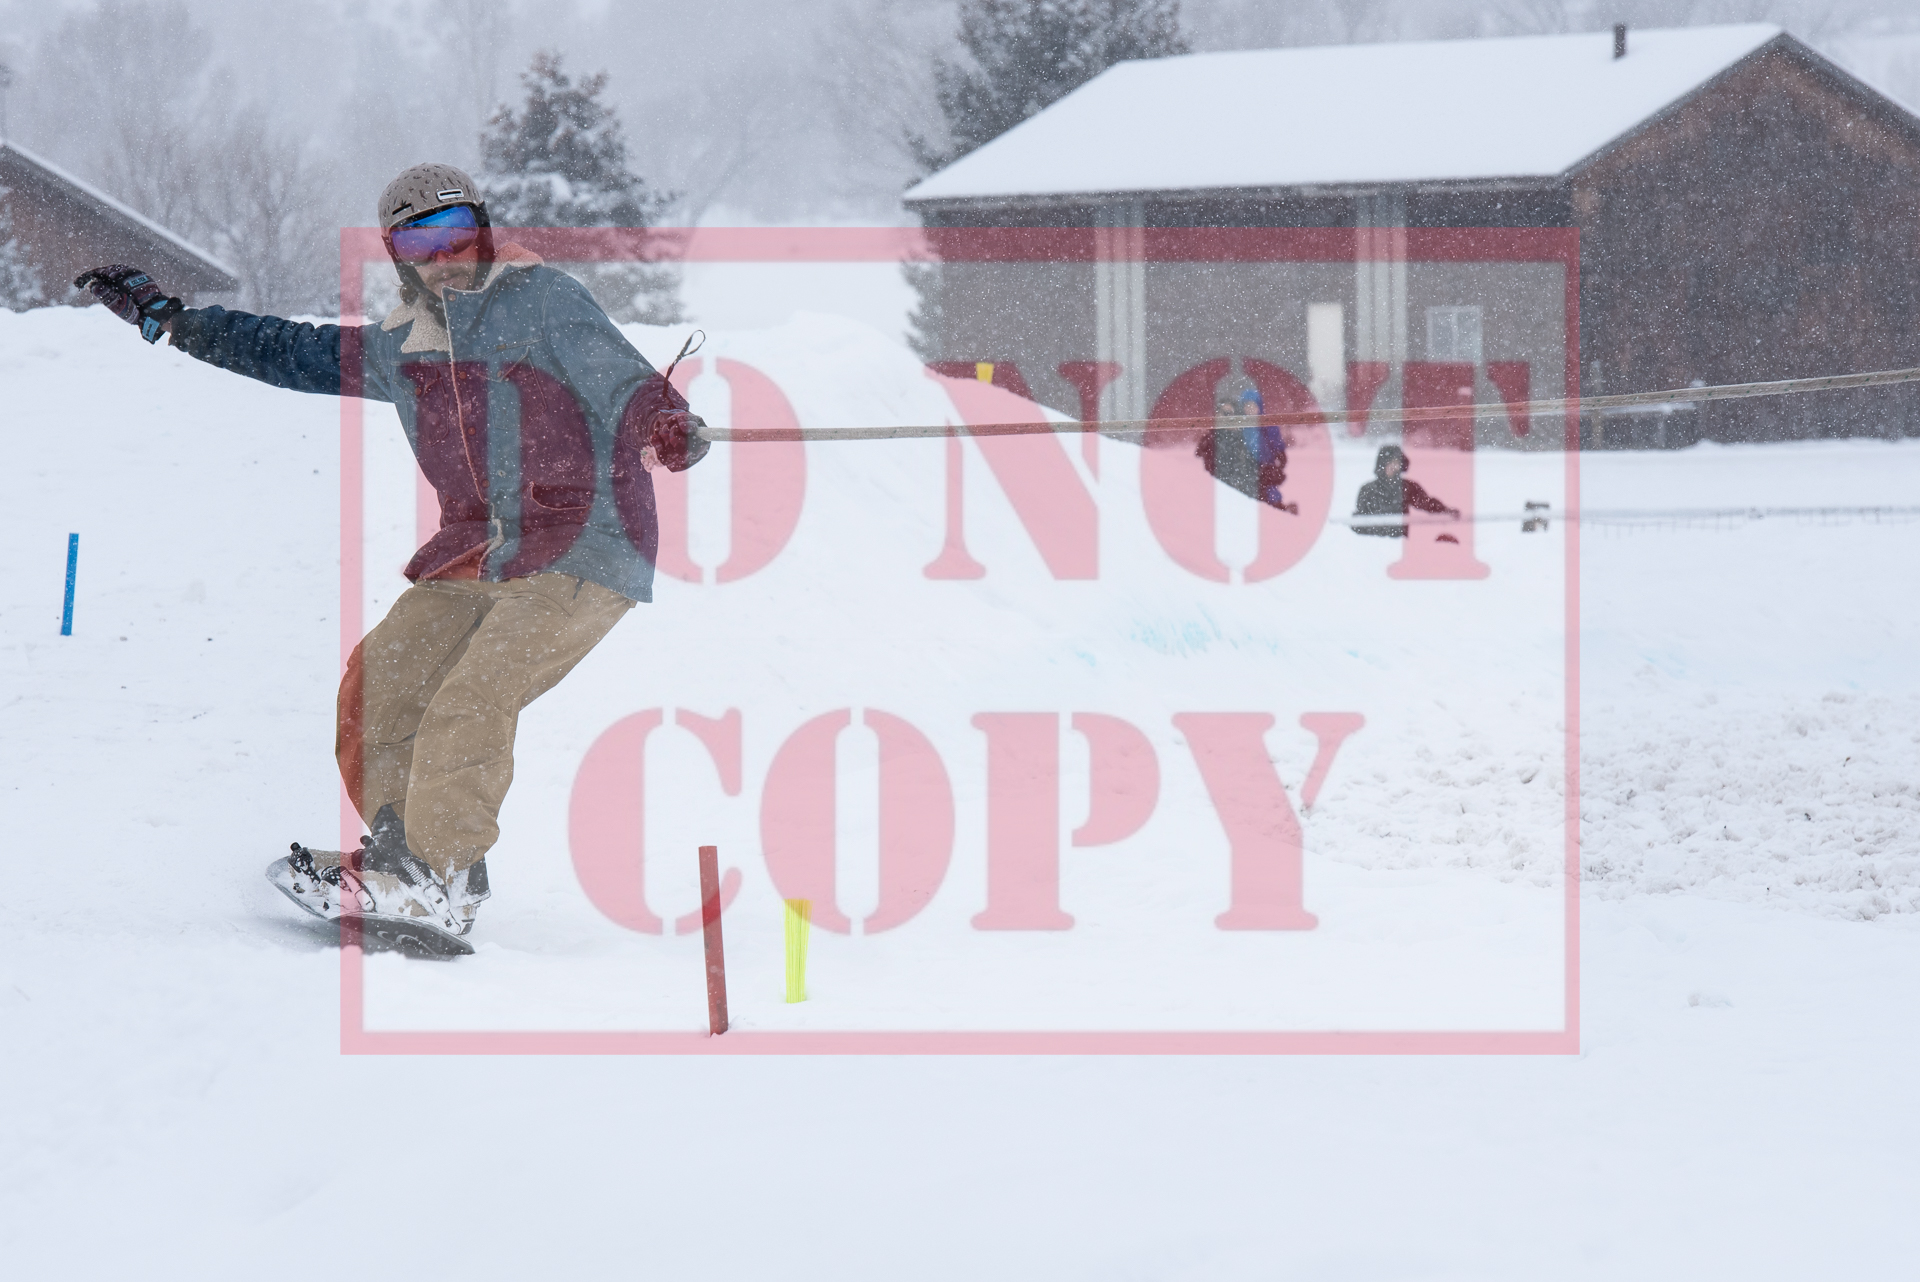 - Kevin Panky - Snowboard 6